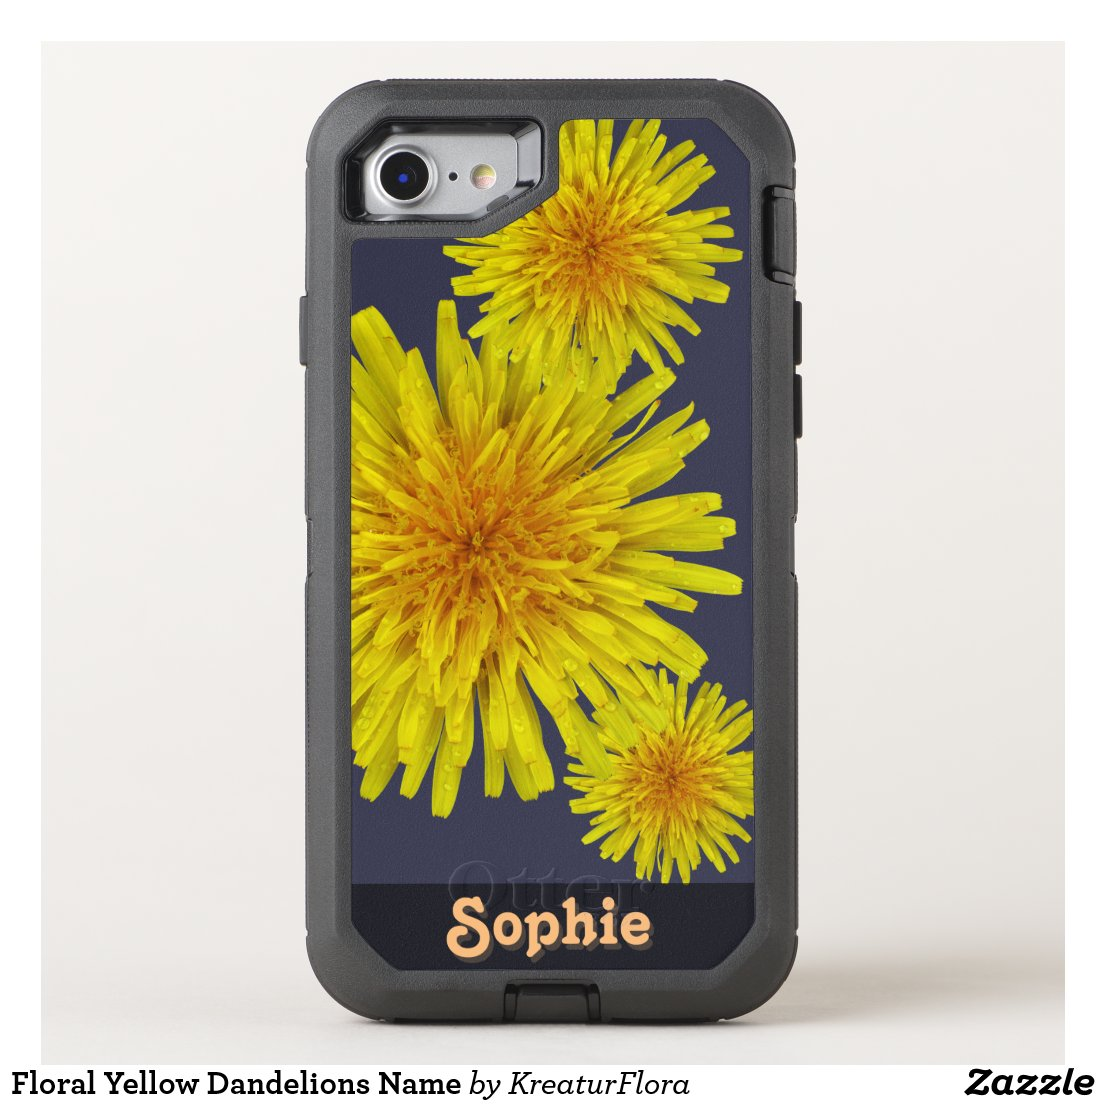 Floral Yellow Dandelions Name